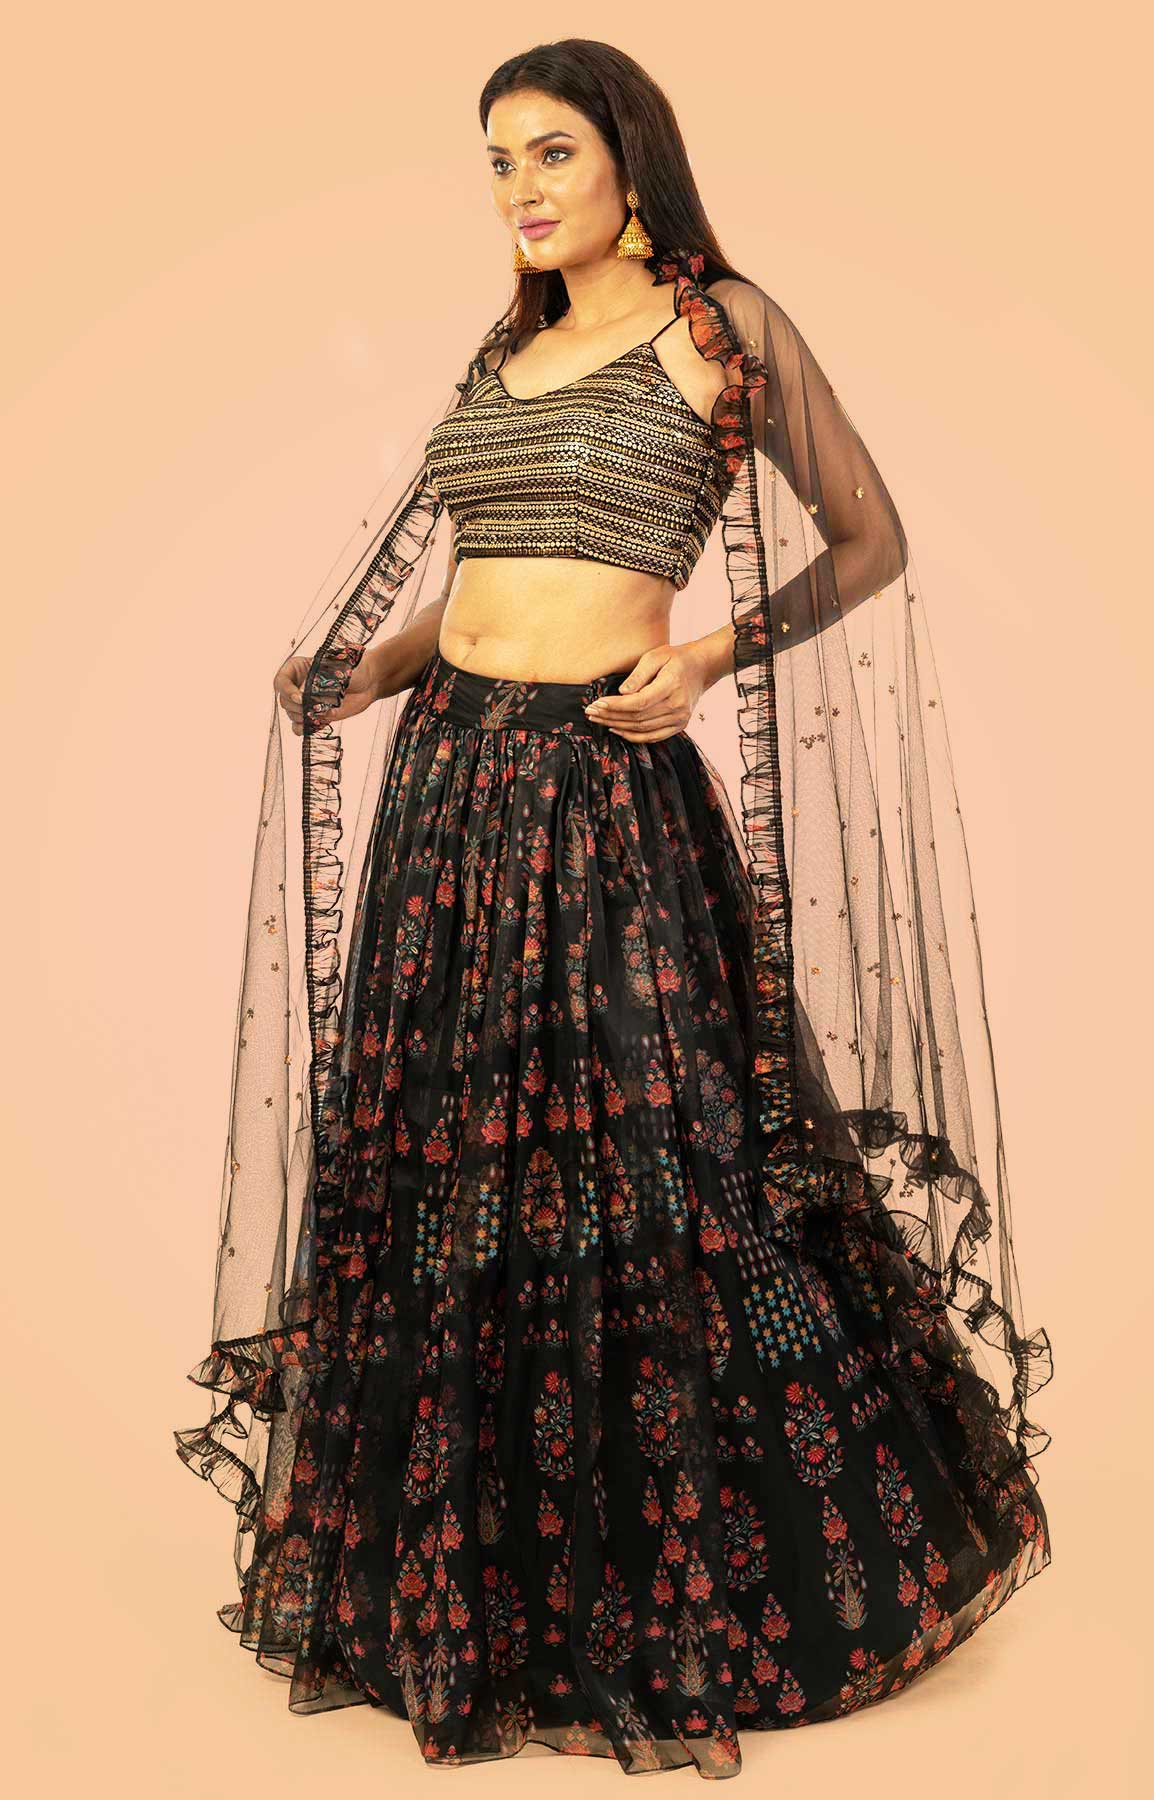 Black Floral Print Skirt With Sequin Top And Frilled Dupatta – Viraaya By Ushnakmals